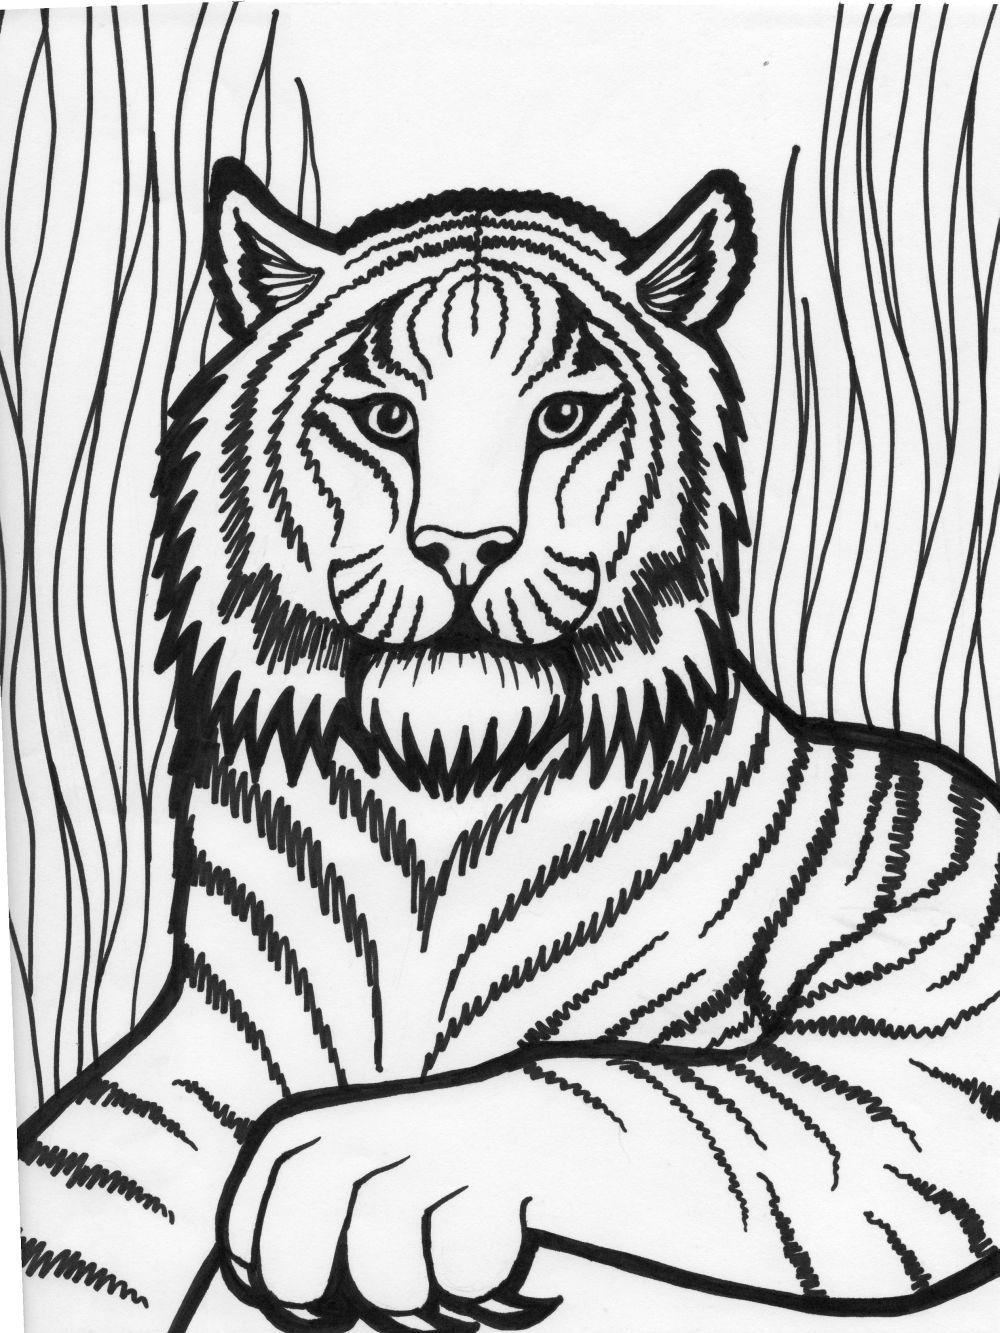 Etonnant Tiger, Bat Cat Colouring Pages @ The Coloring Barn